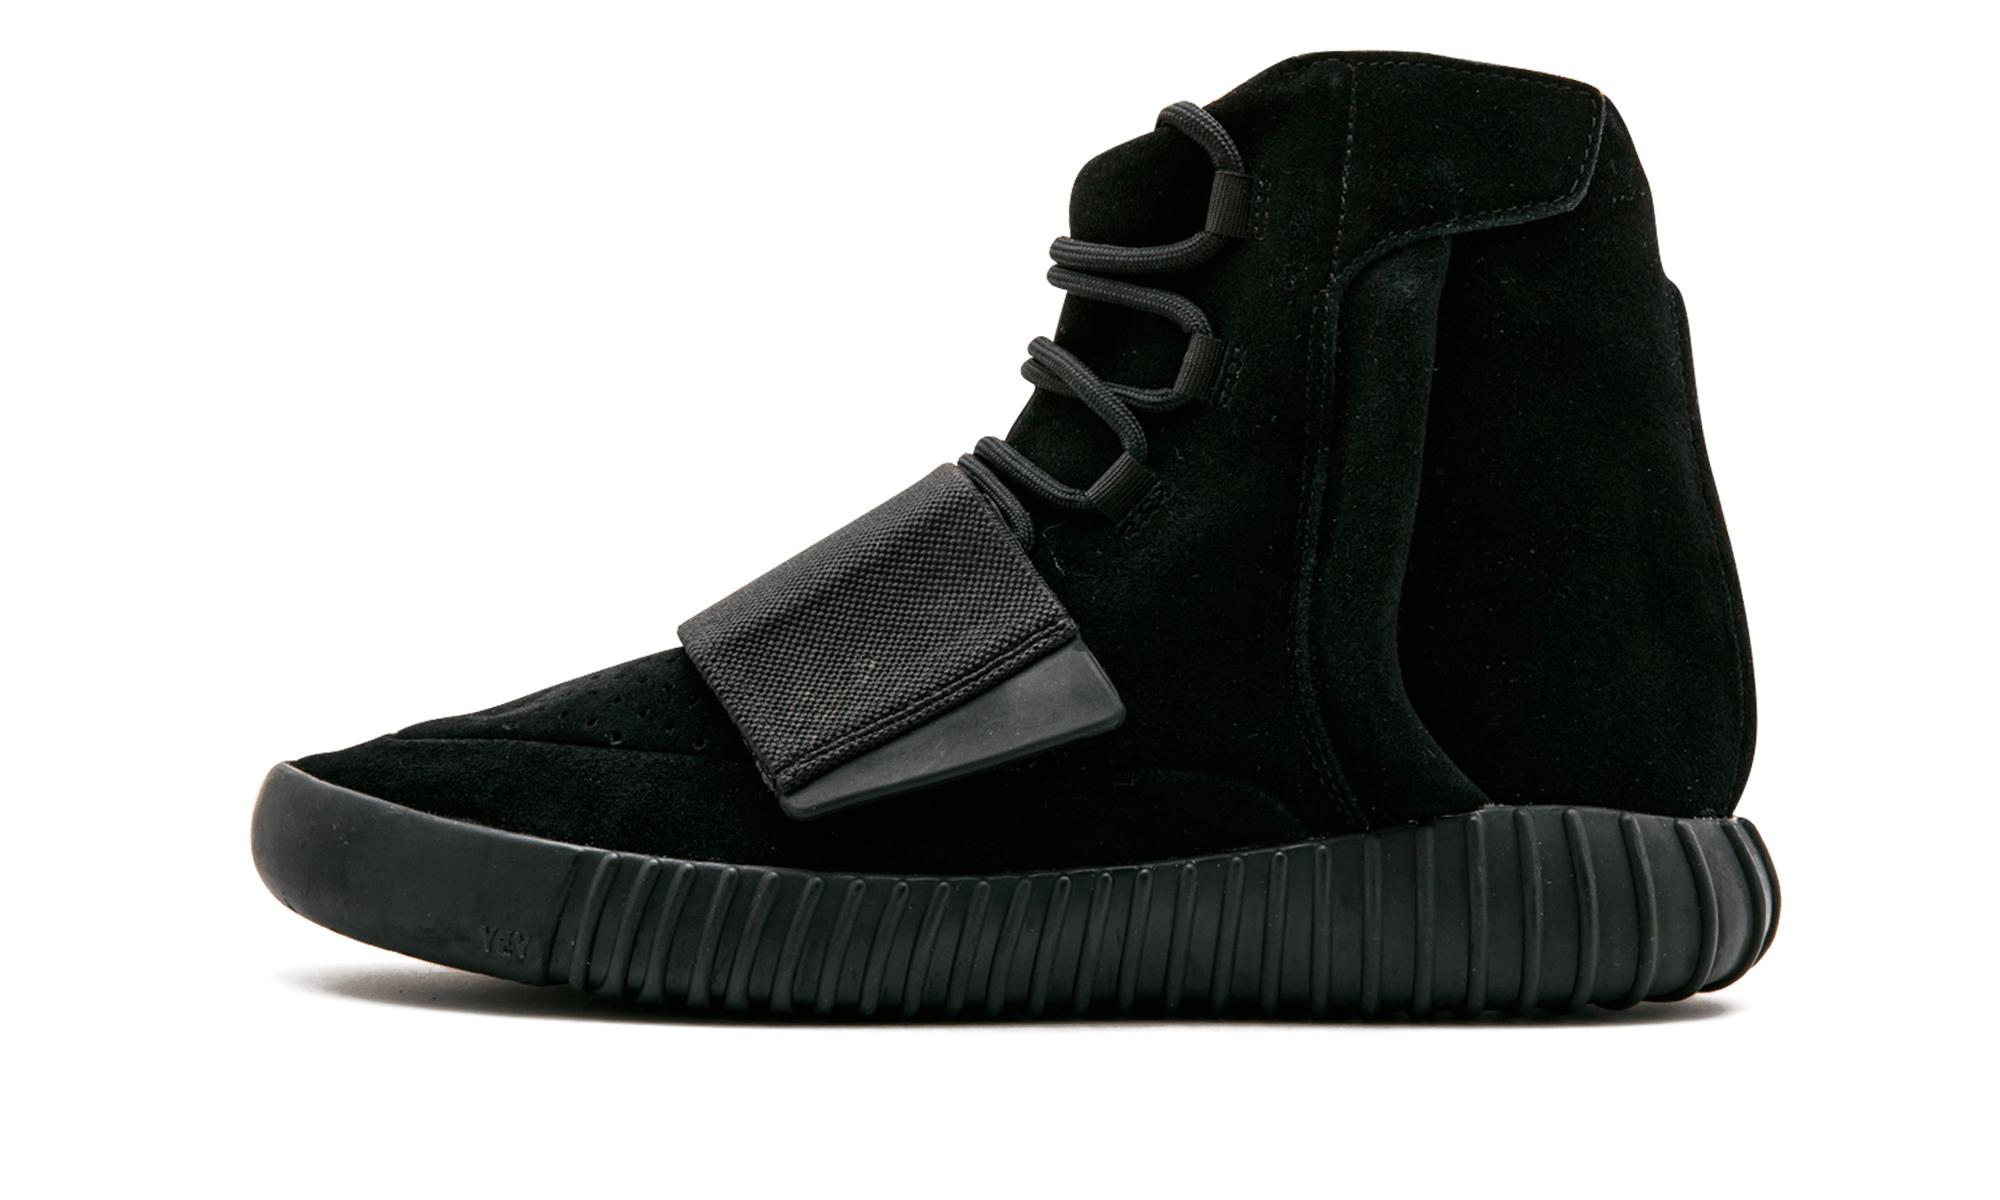 New Zealand Boost Yeezy Black F3a08 750 852fb Leather WIH9ED2